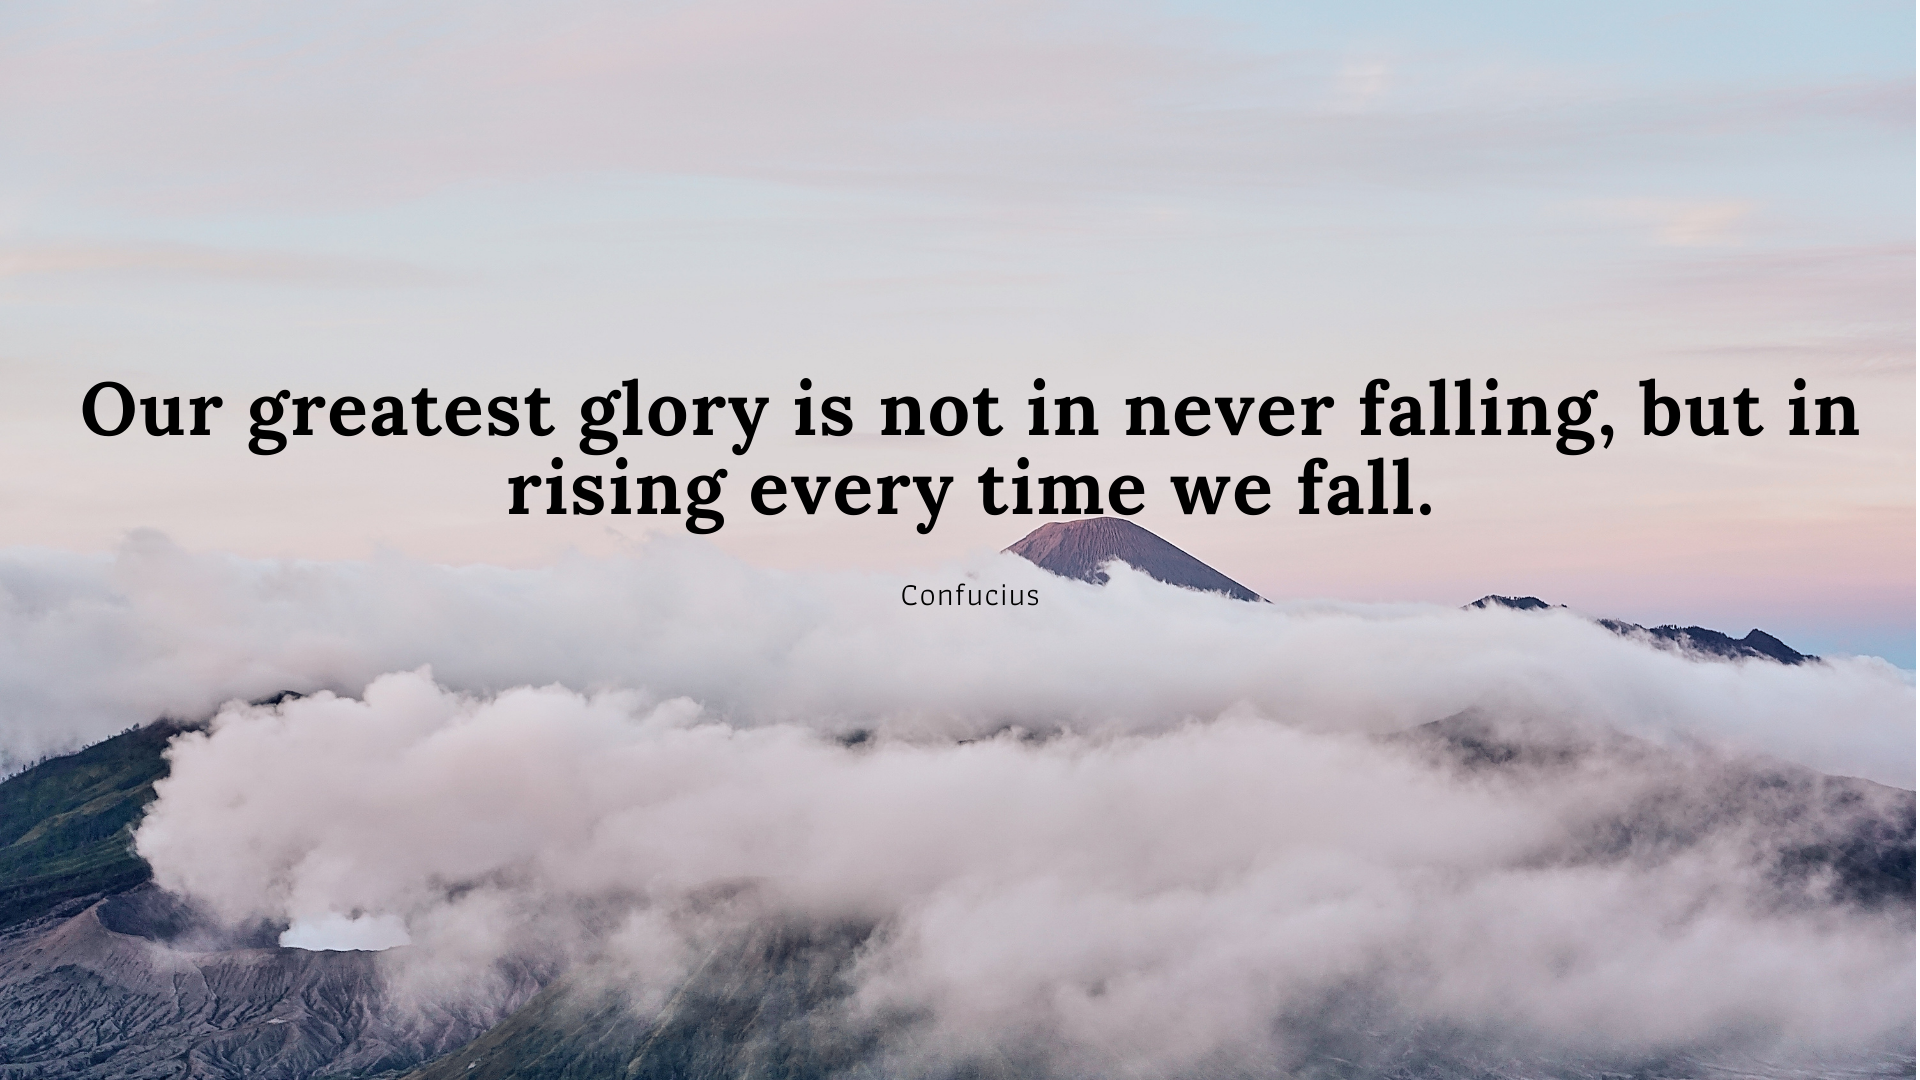 Our greatest glory is not in never falling, but in rising every time we fall. – Confucius[1920×1080]